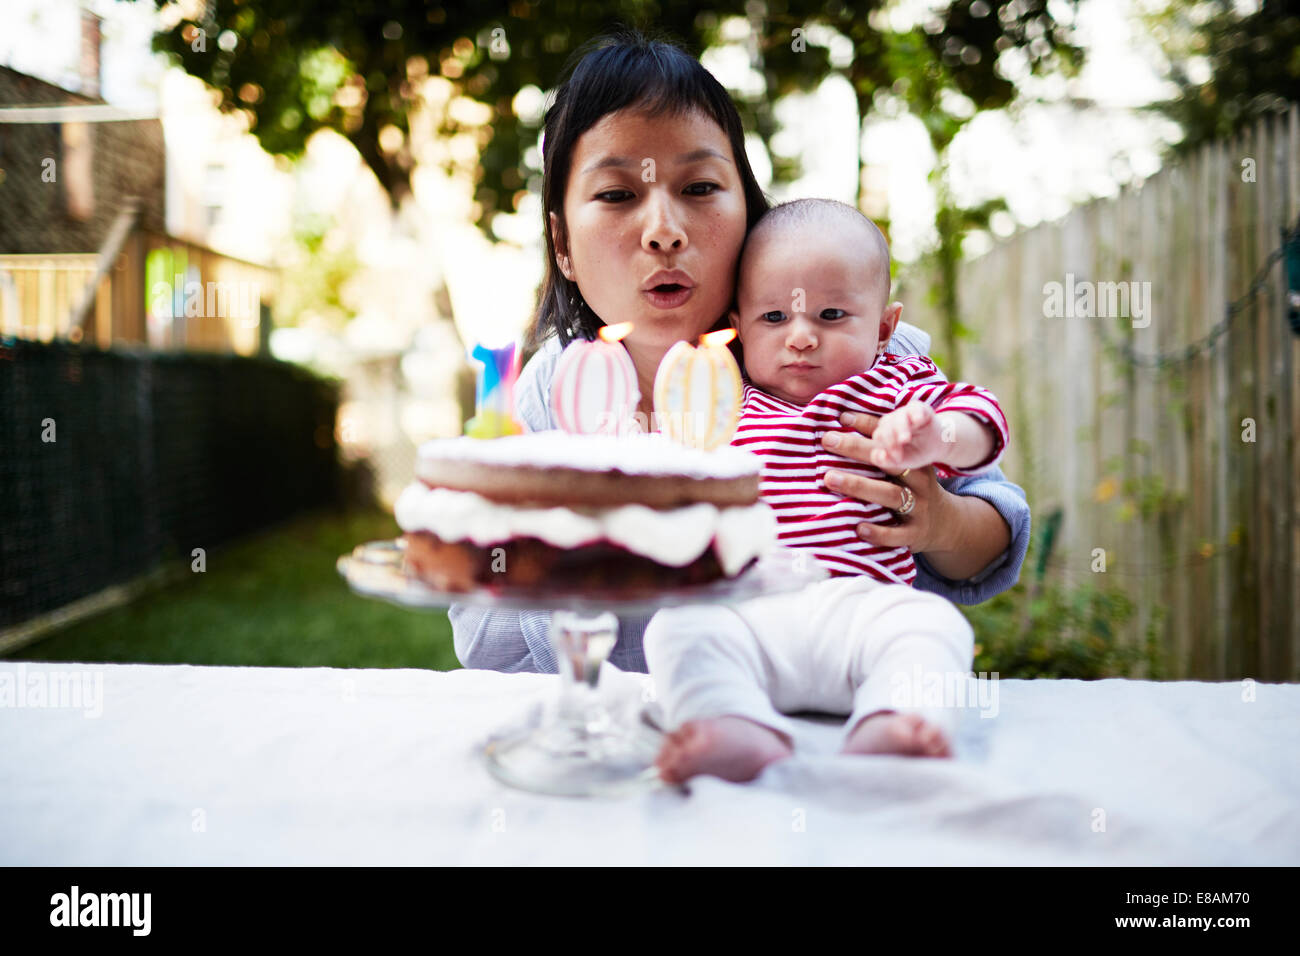 Mother holding baby fils, blowing out candles on cake Banque D'Images